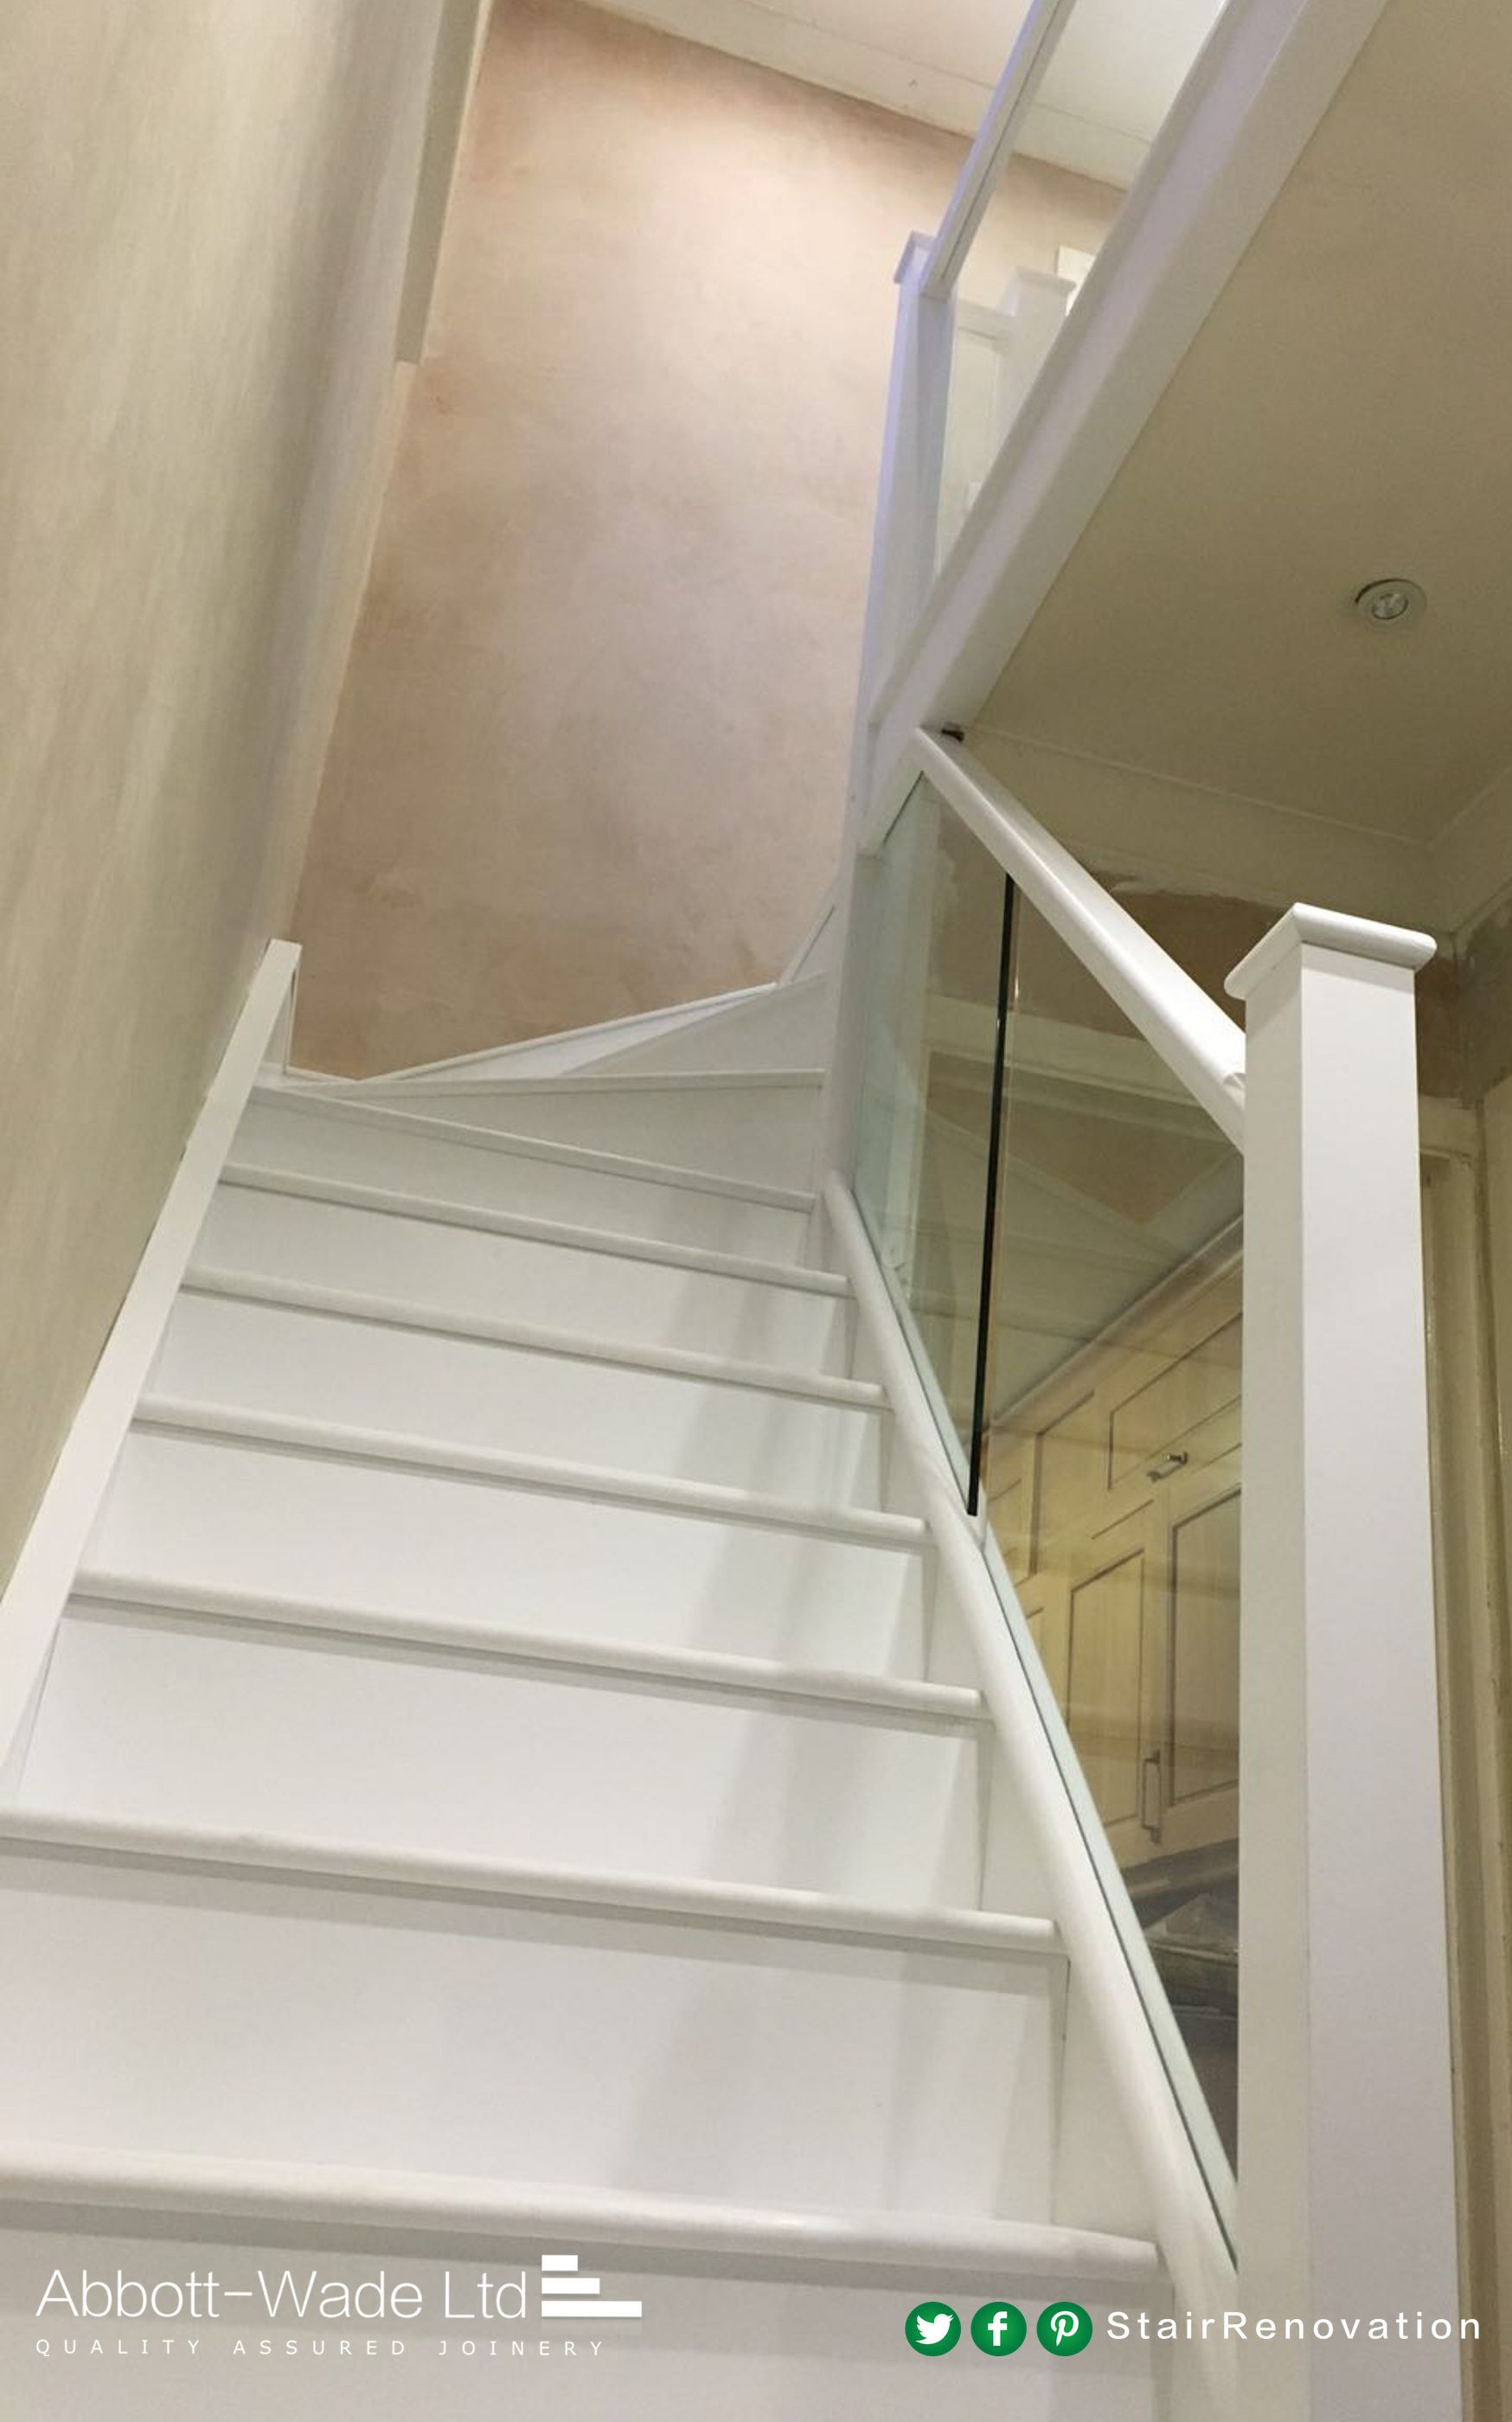 Best Full White Staircase With Glass Balustrade In 2019 White 400 x 300